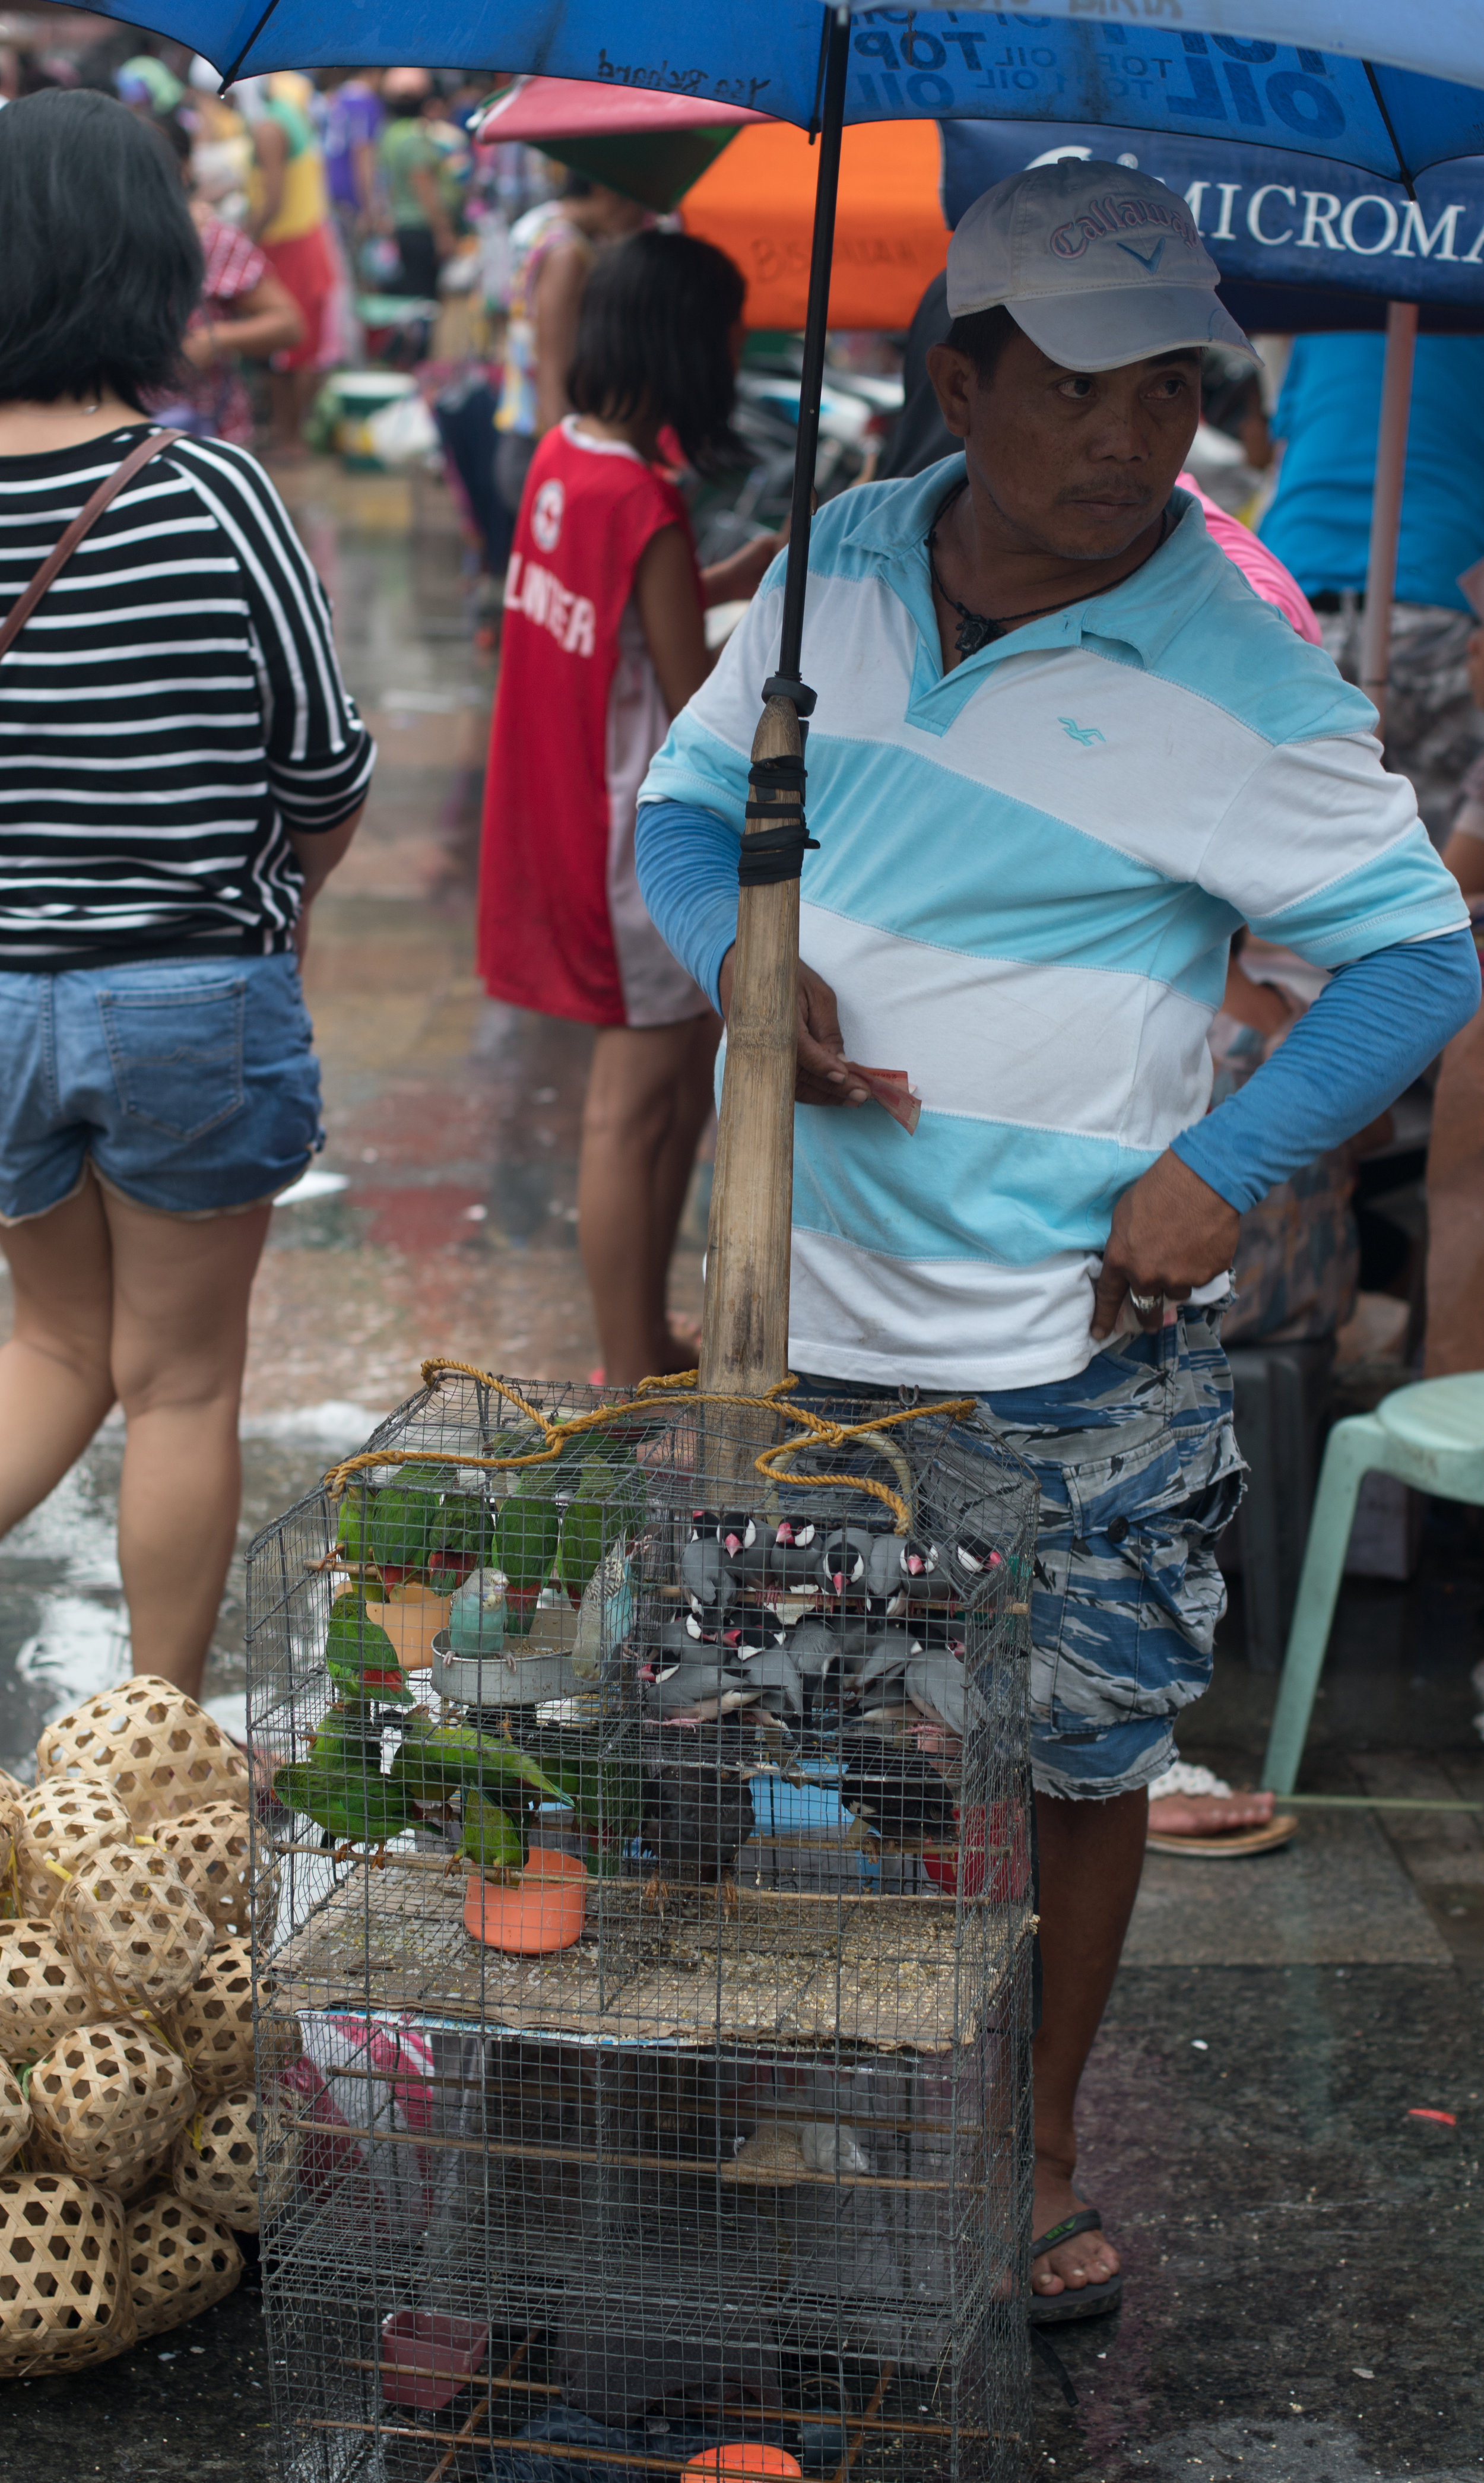 Wandering the Manila Streets: A Man and His Flock